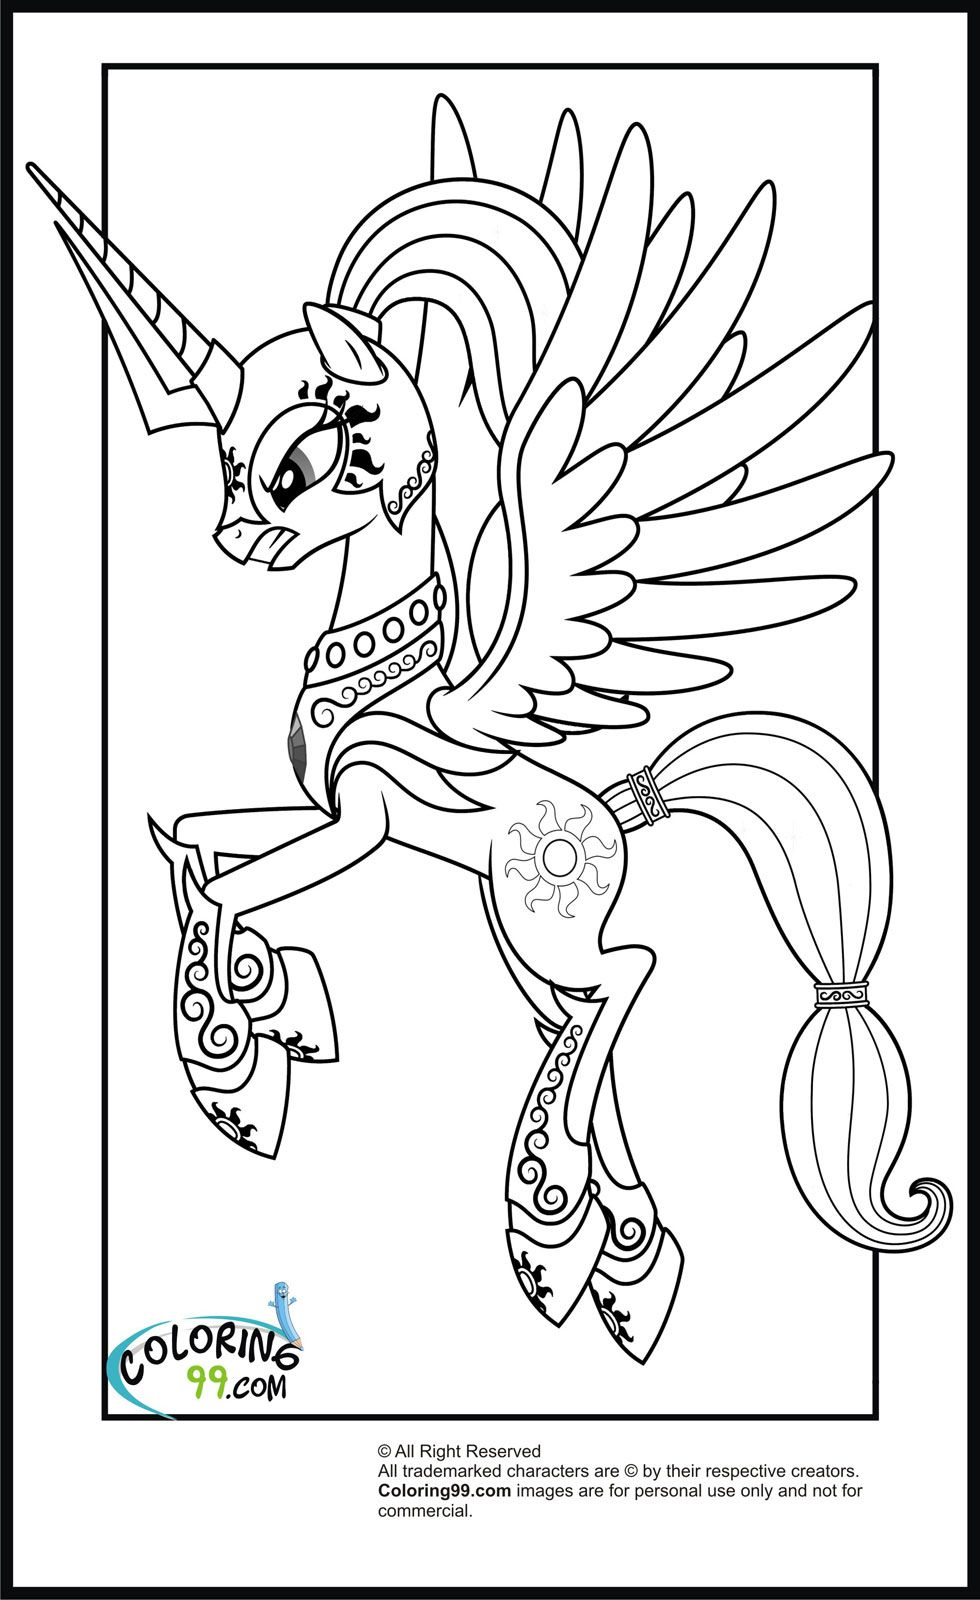 My little pony friendship is magic coloring pages princess cadence - My Little Pony Princess Celestia Coloring Pages